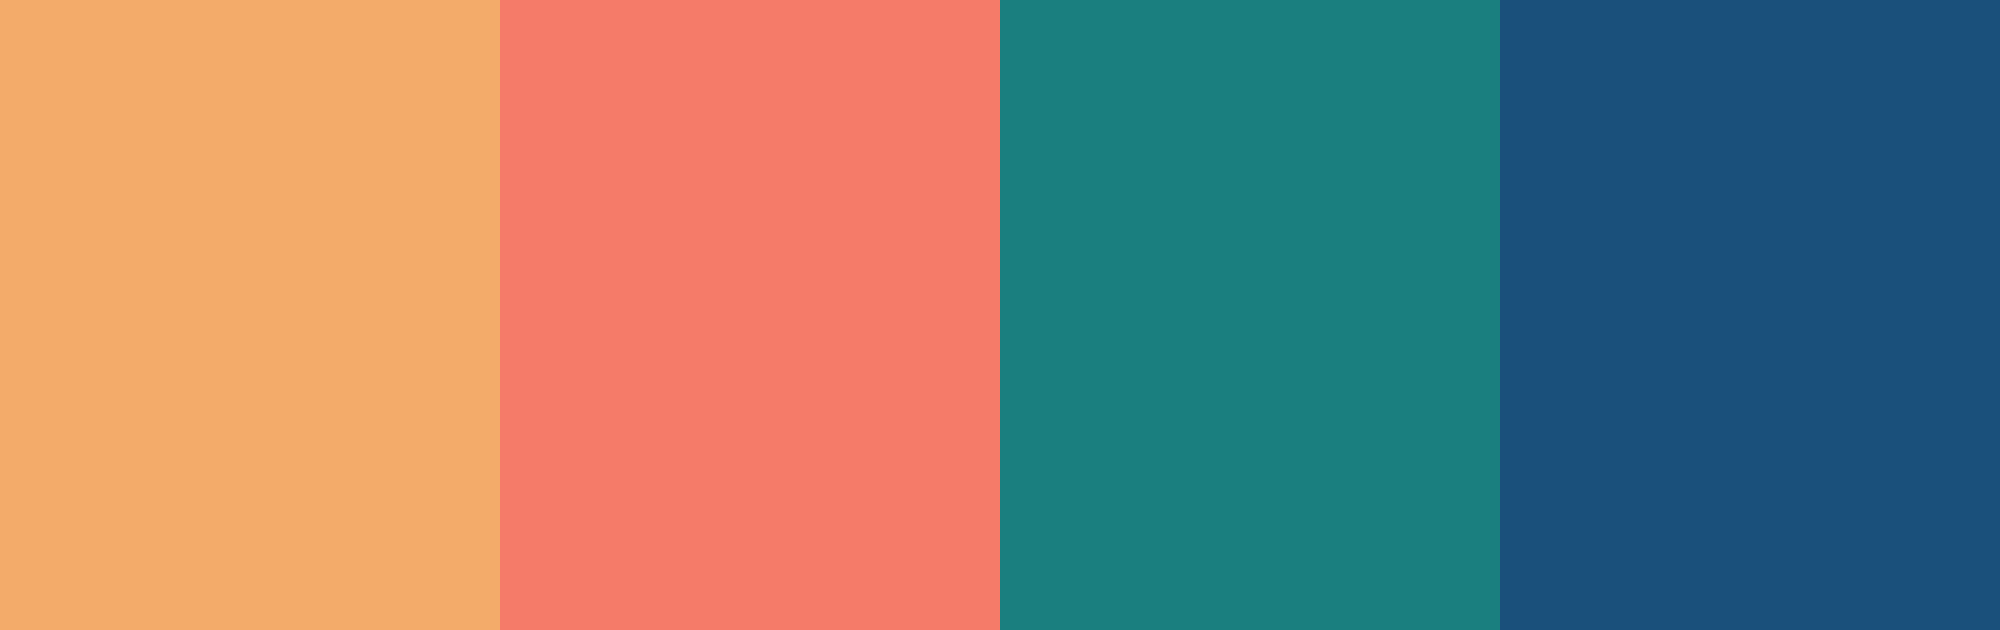 Demonstrating a rectangle color scheme.